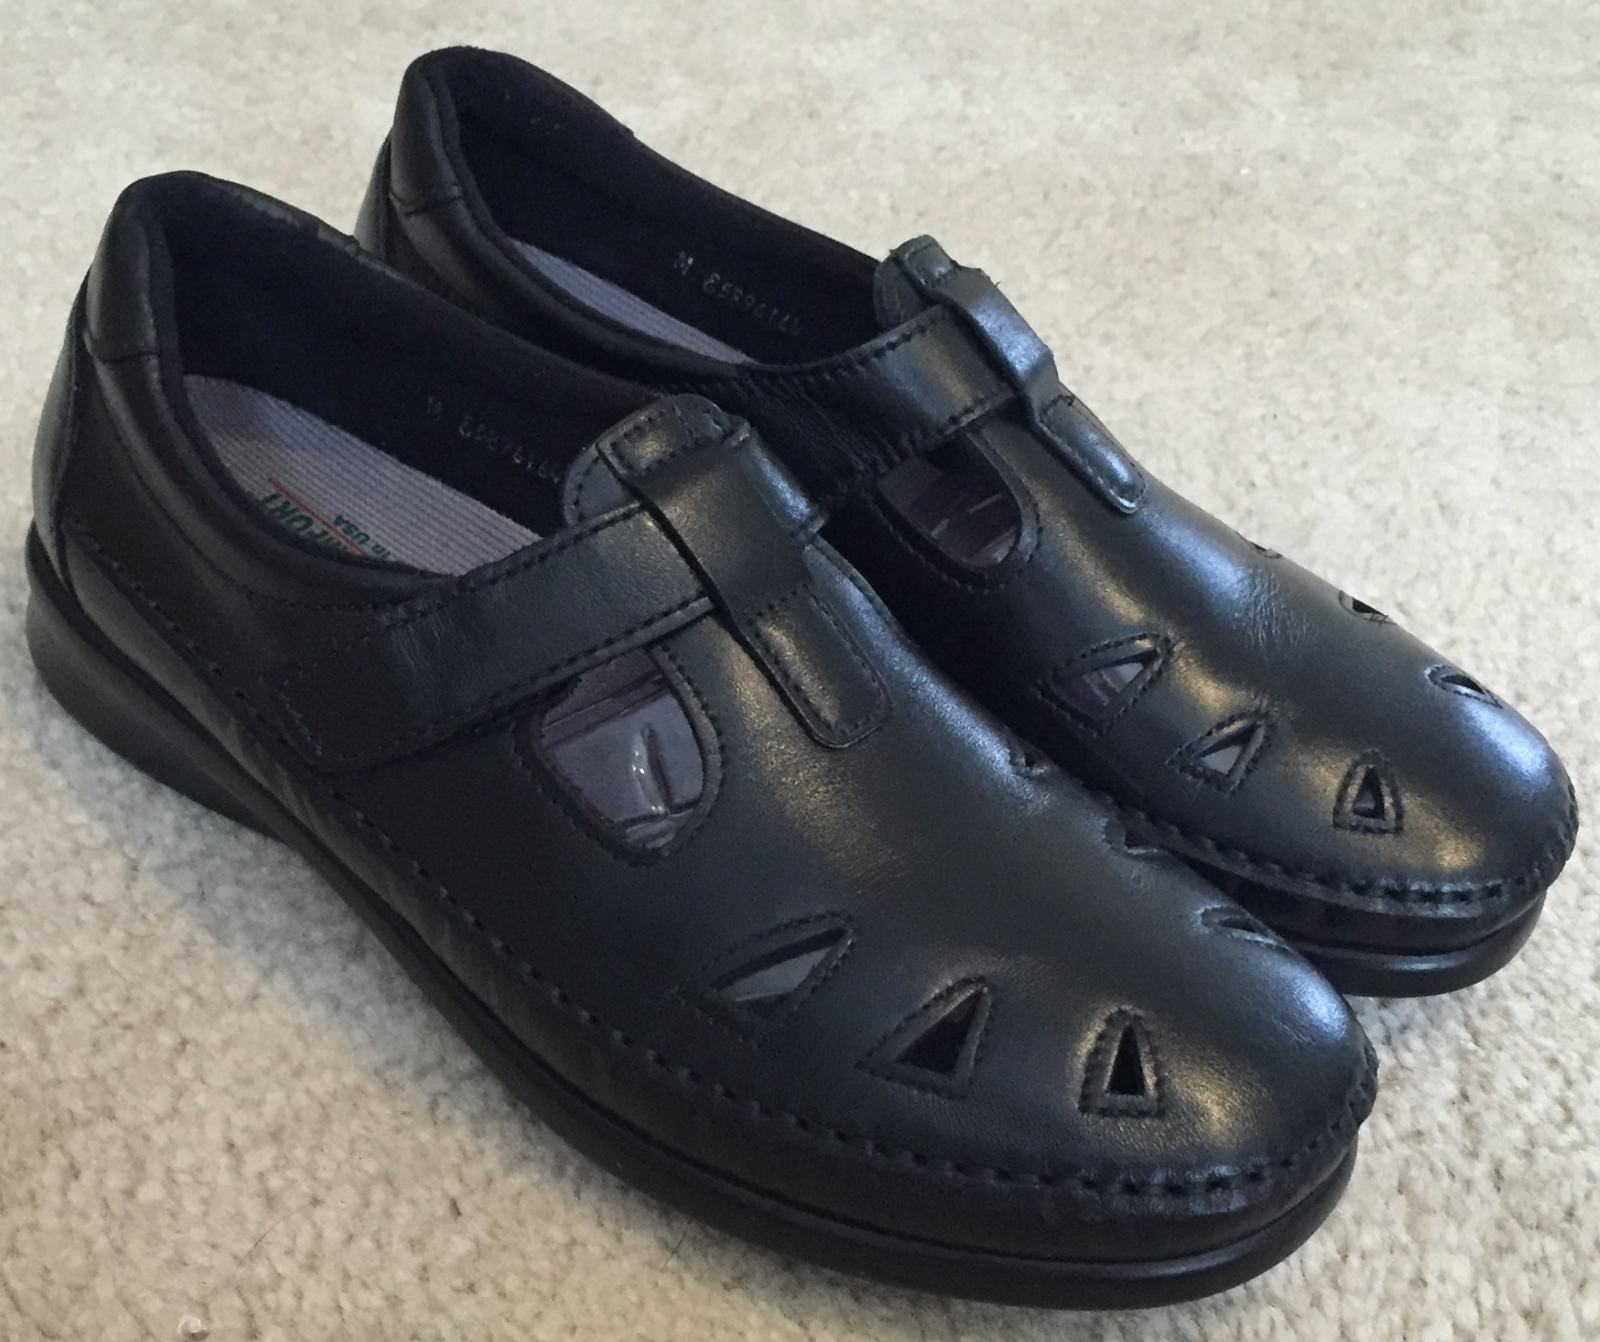 Women's SAS Roamer Mary Jane Style Black Leather shoes  Sz. 8 M    167